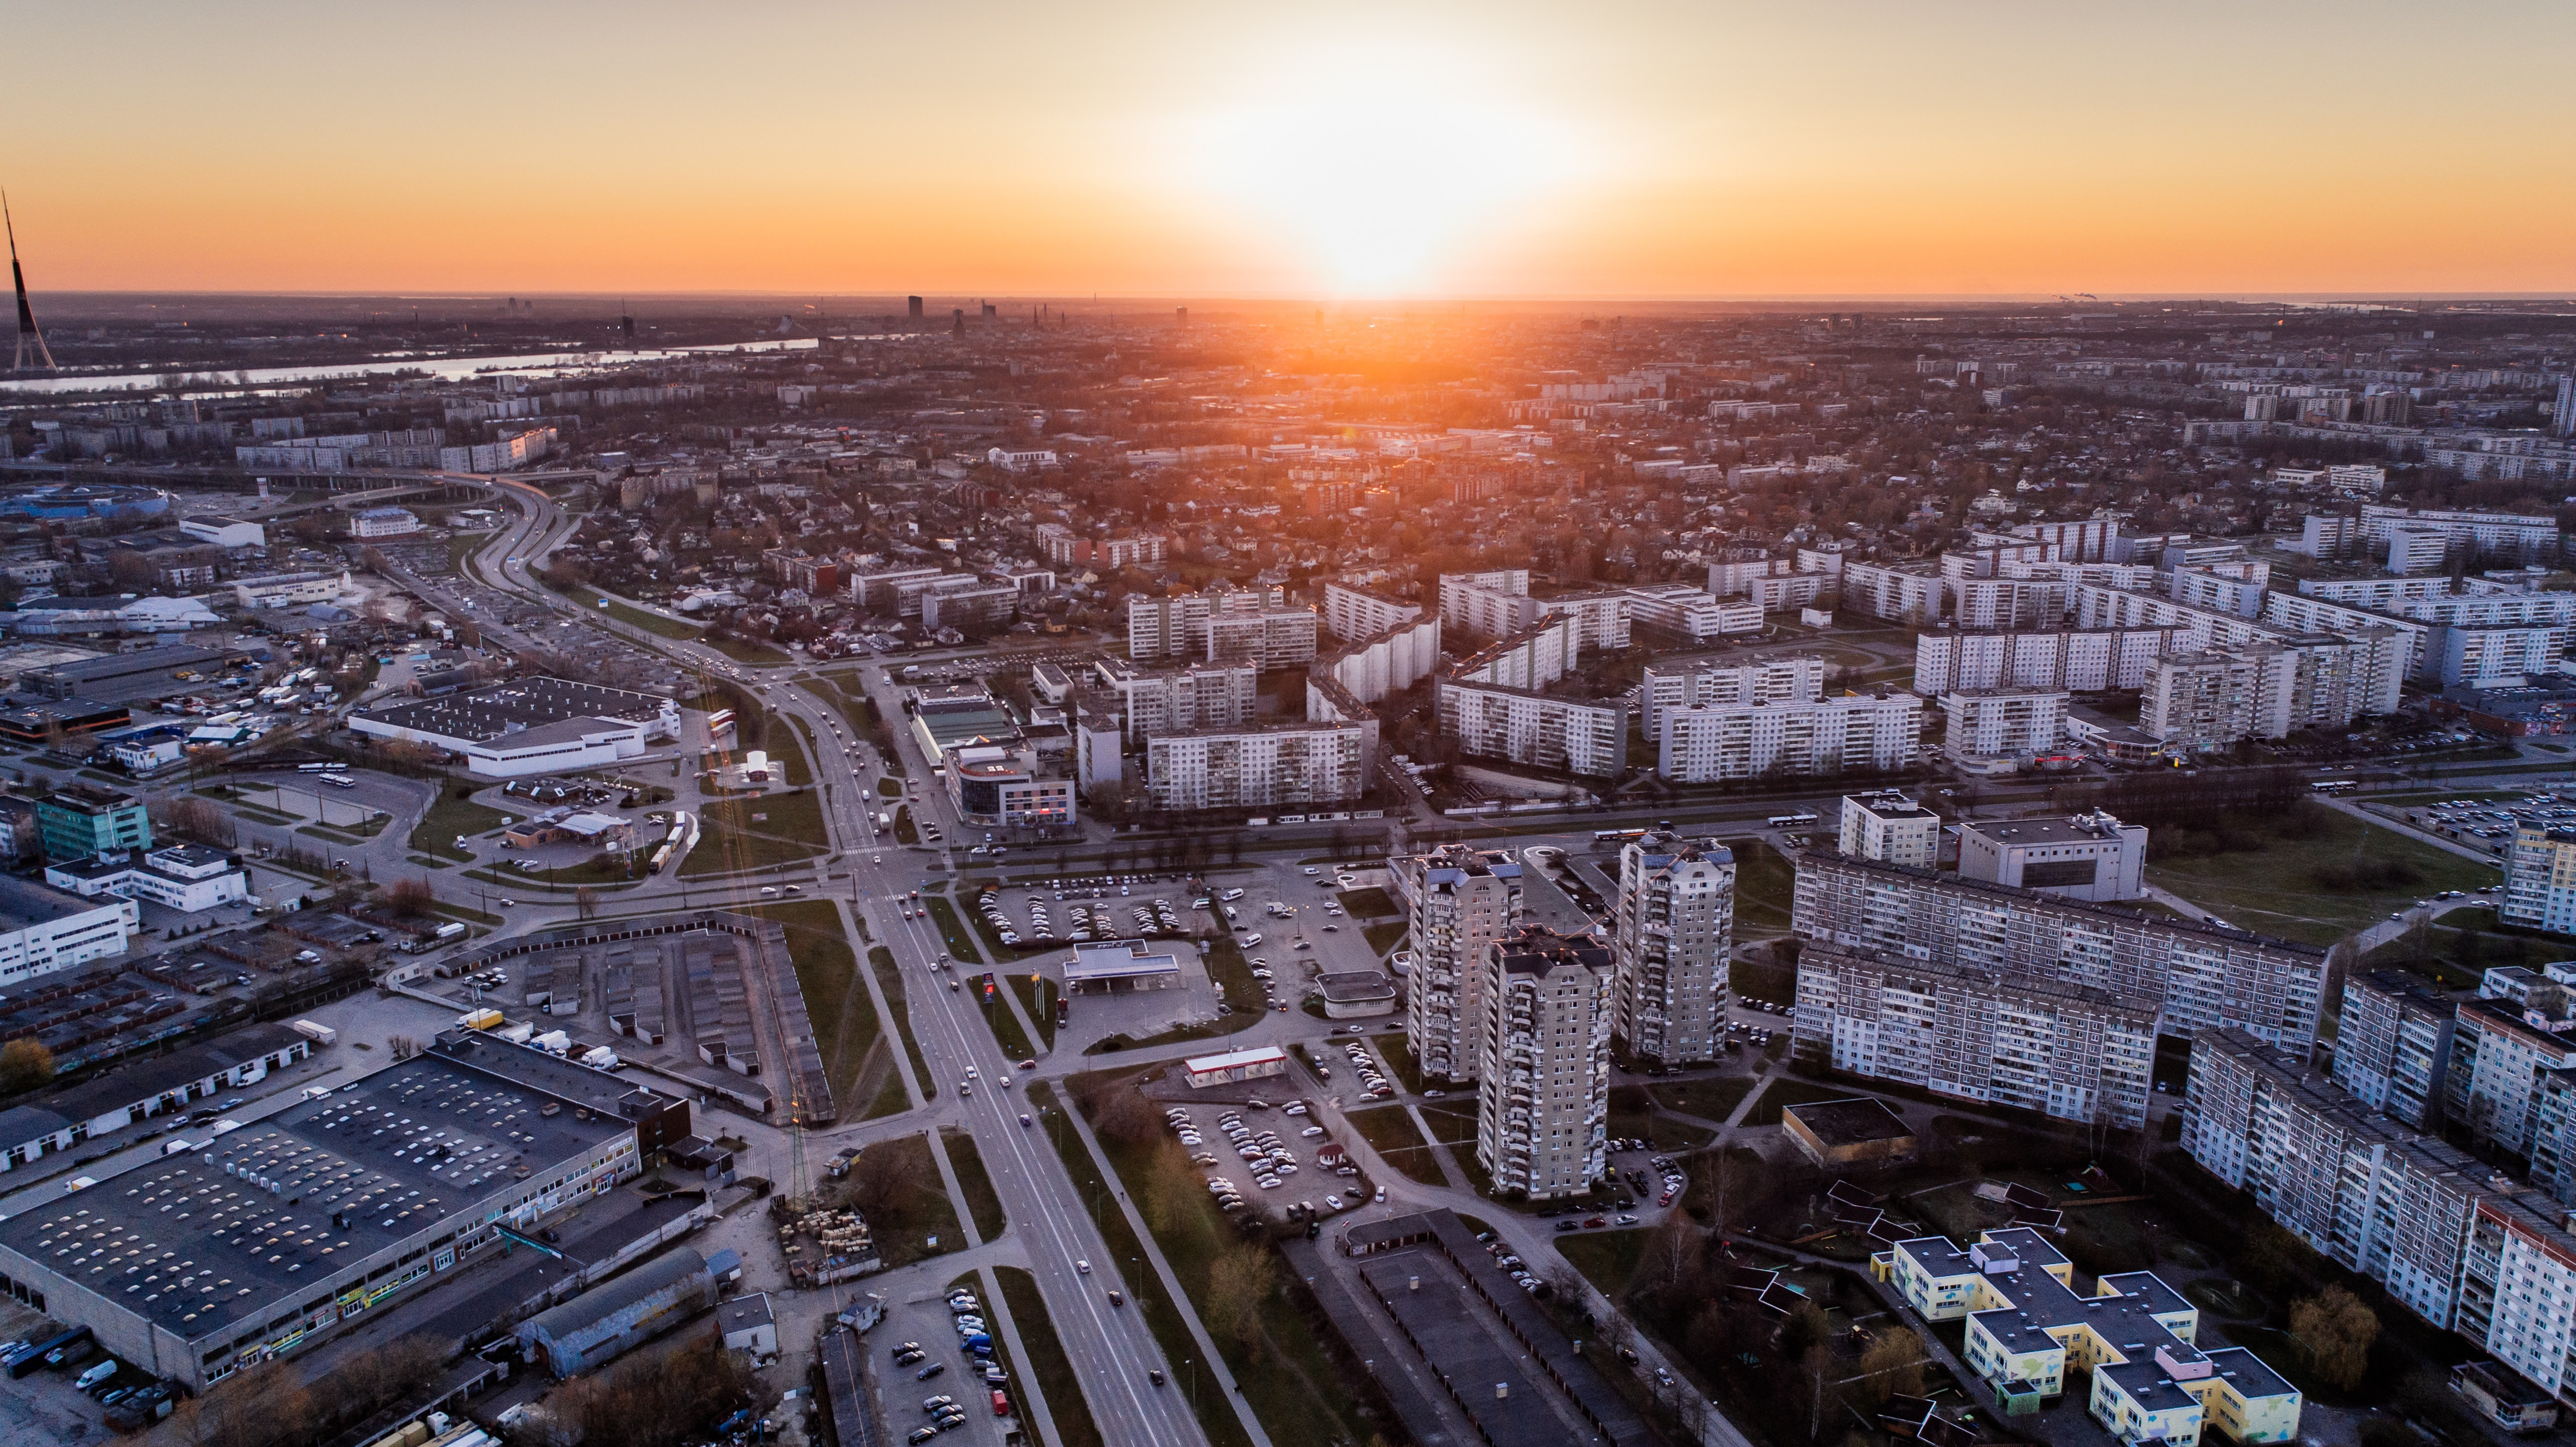 Aerial Photo of High Rise Building during Sunrise, Aerial view, River, Urban, Trees, HQ Photo